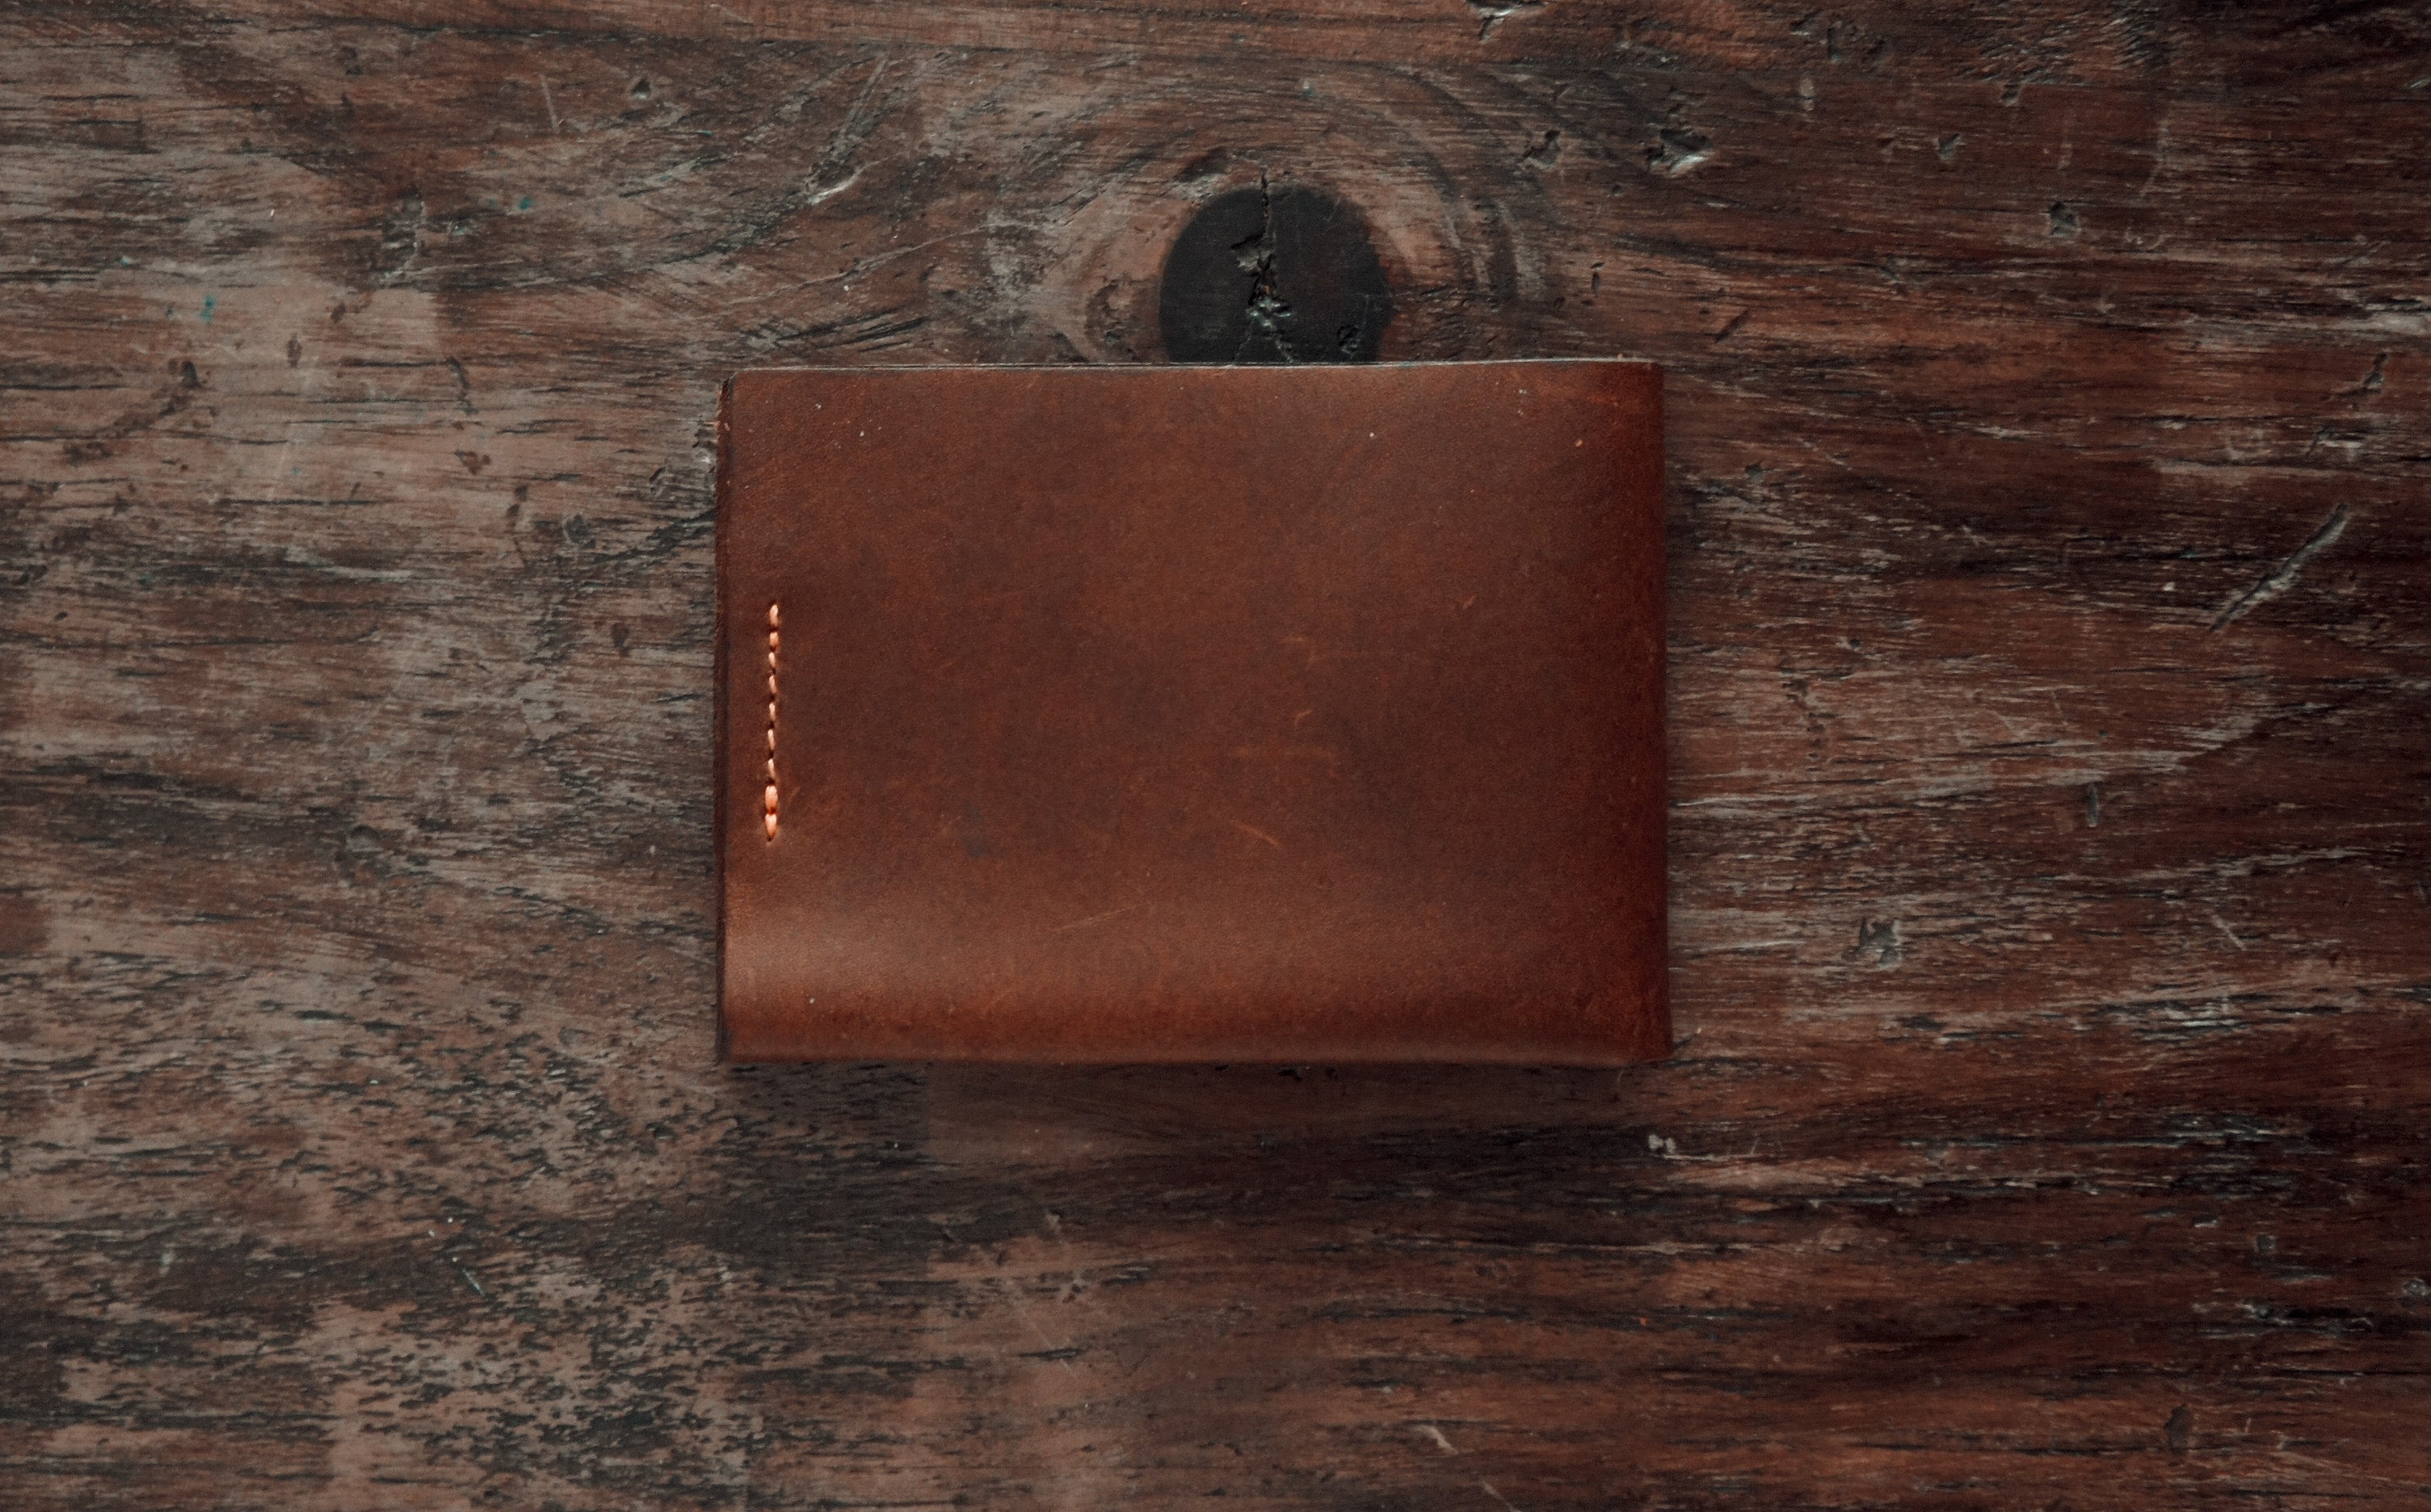 handmade brown leather bifold slim wallet, back side